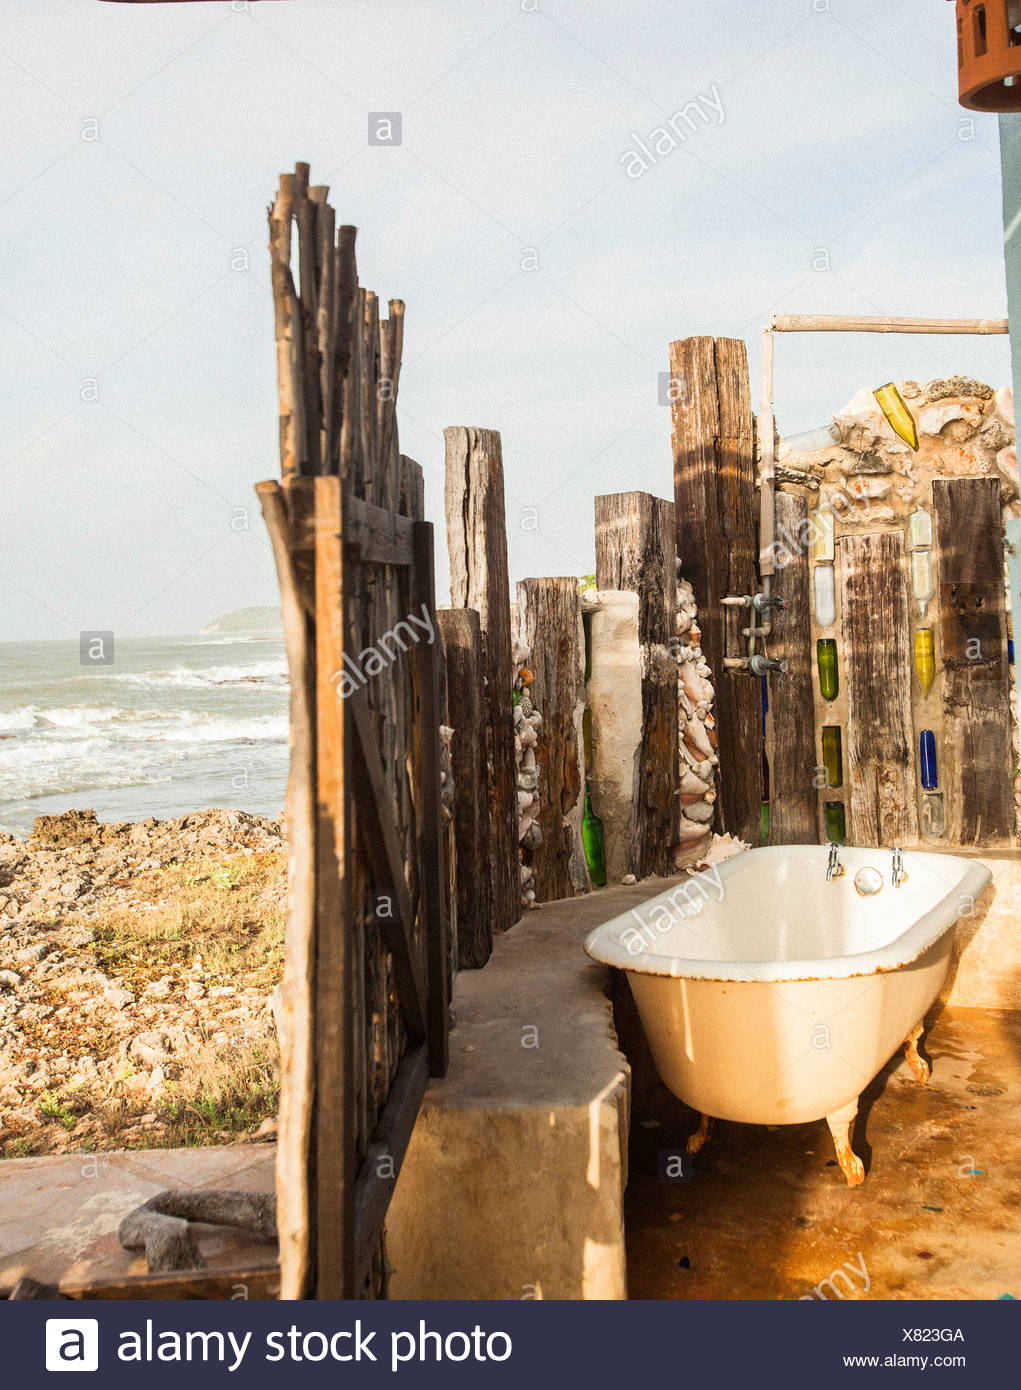 A bath tub and a wooden fence near the ocean shore. - Stock Image